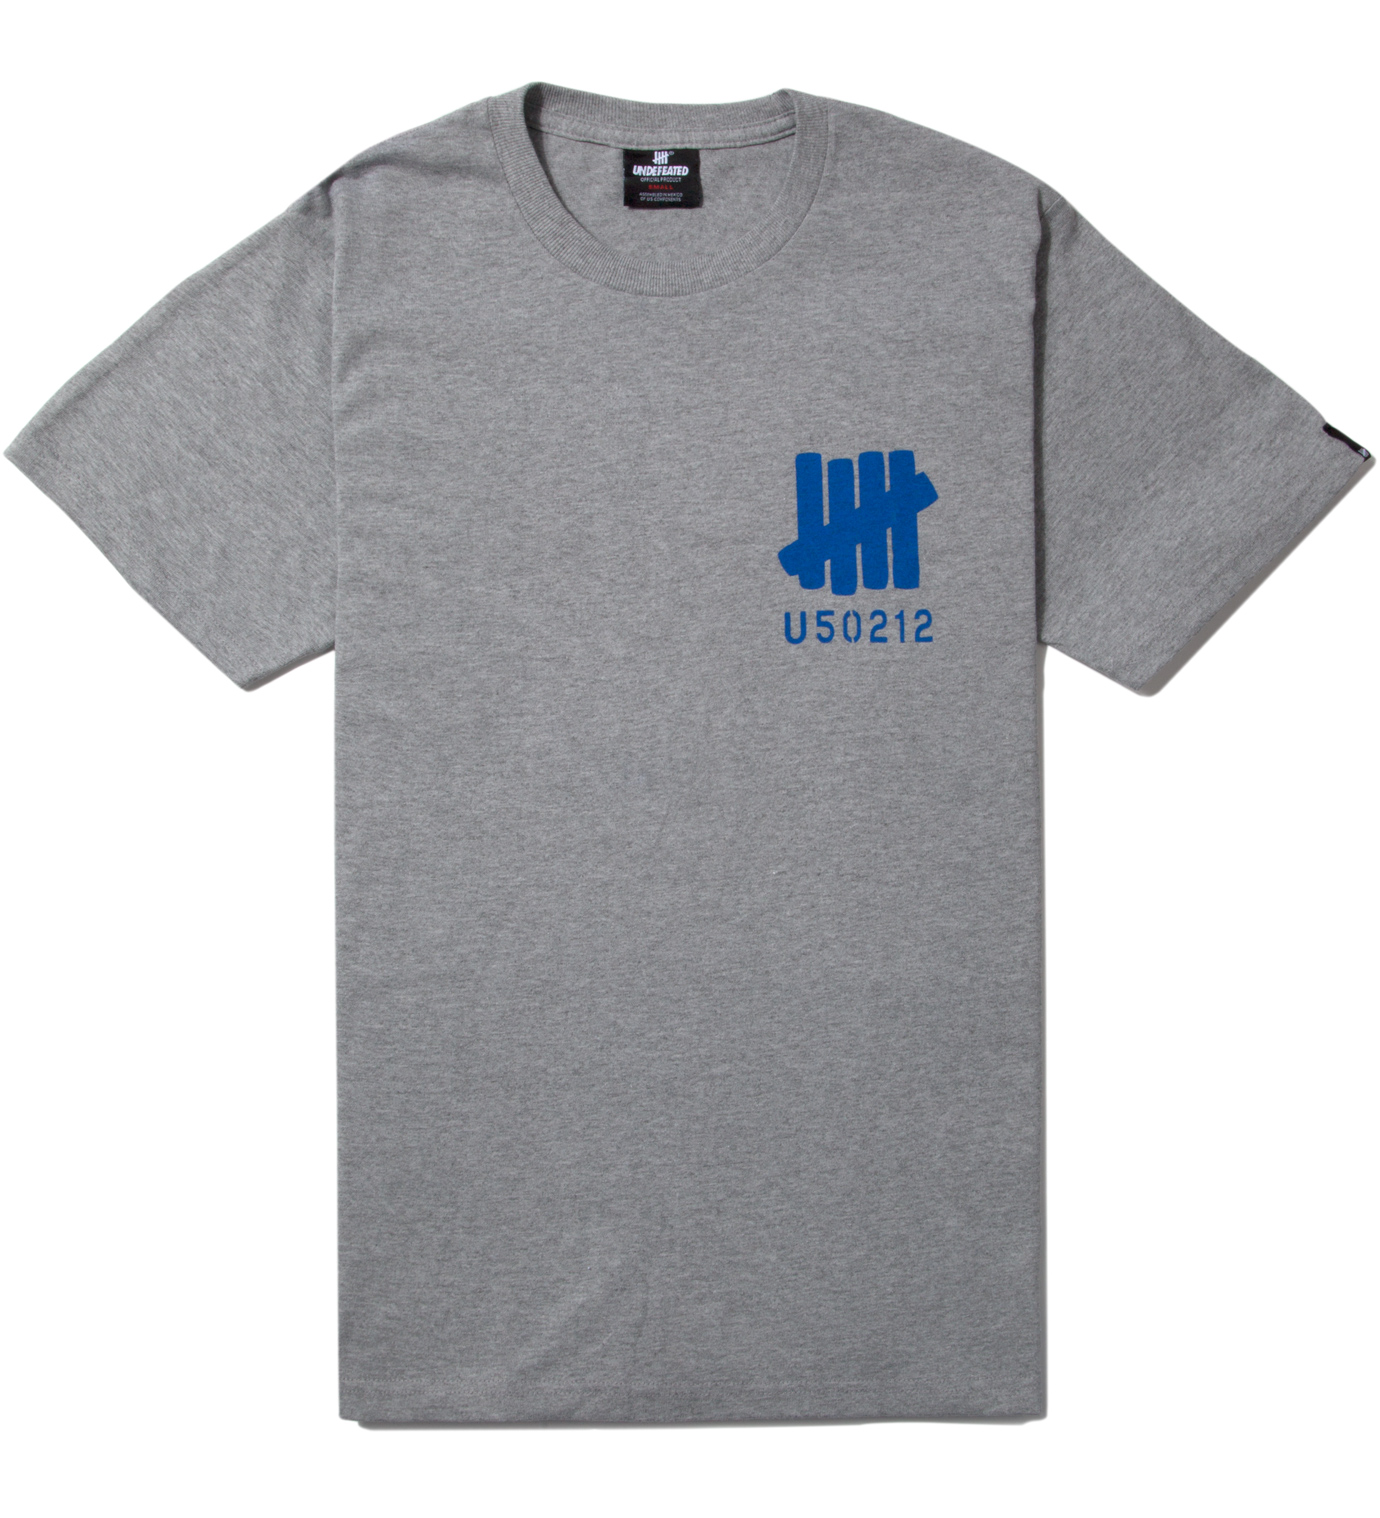 UNDEFEATED Heather Grey SS U50212 T-Shirt